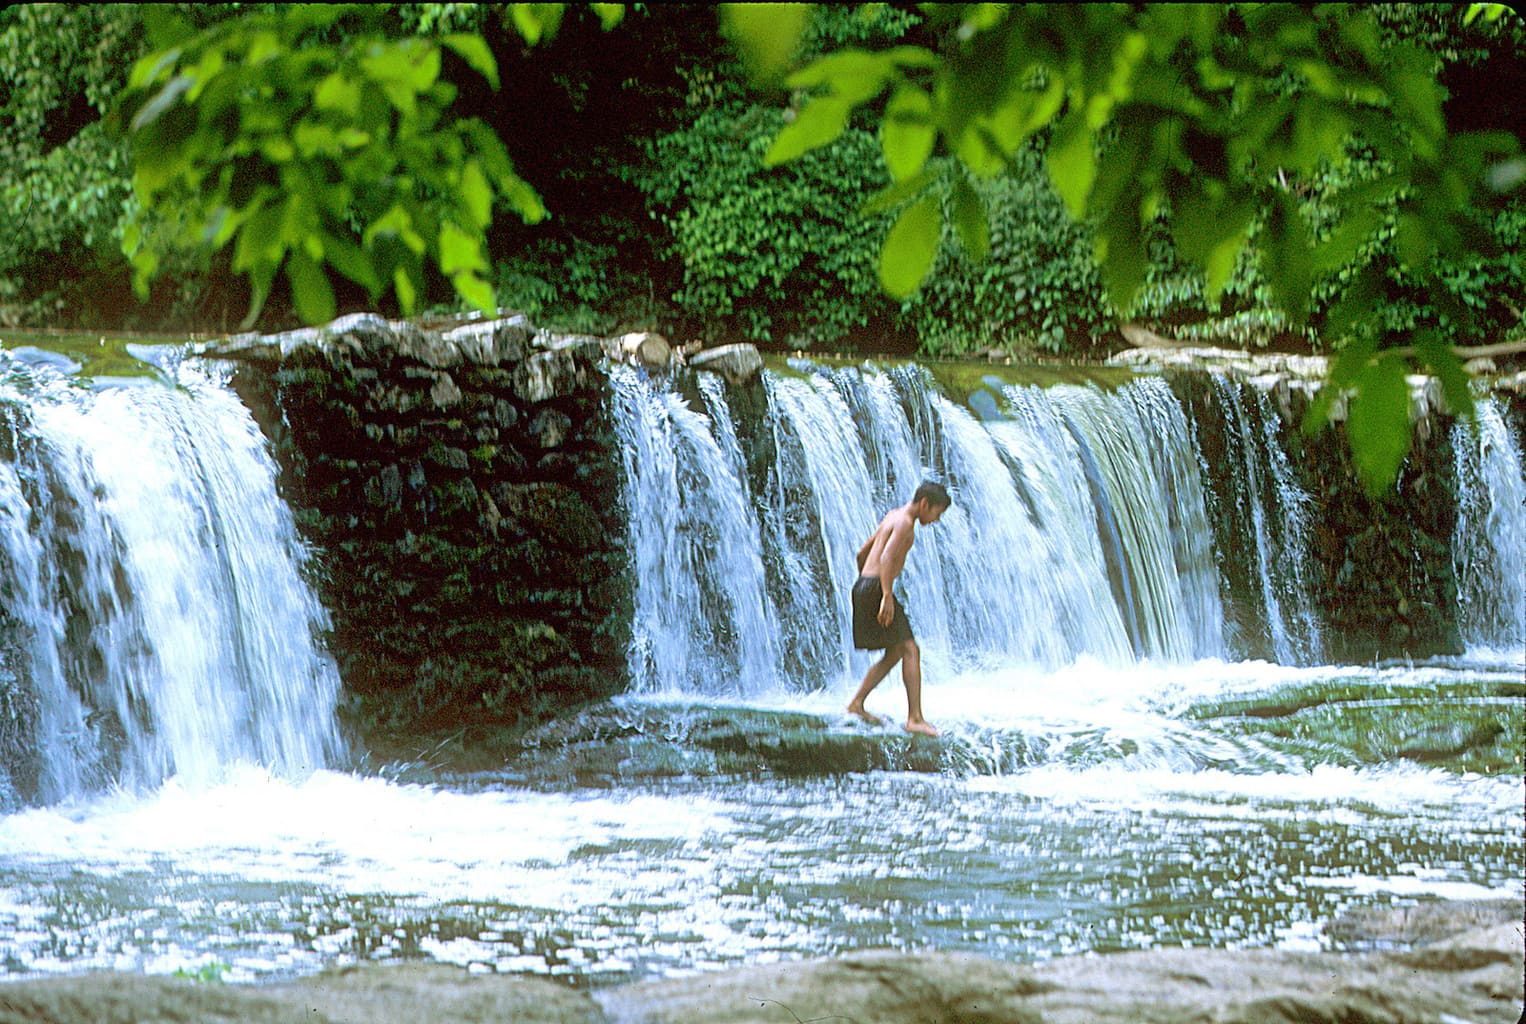 Part of Philadelphia's 4,400-acre Fairmount Park, Valley Green is located along the Wissahickon Creek. Visitors to the park often partake in fishing, biking and hiking activities.